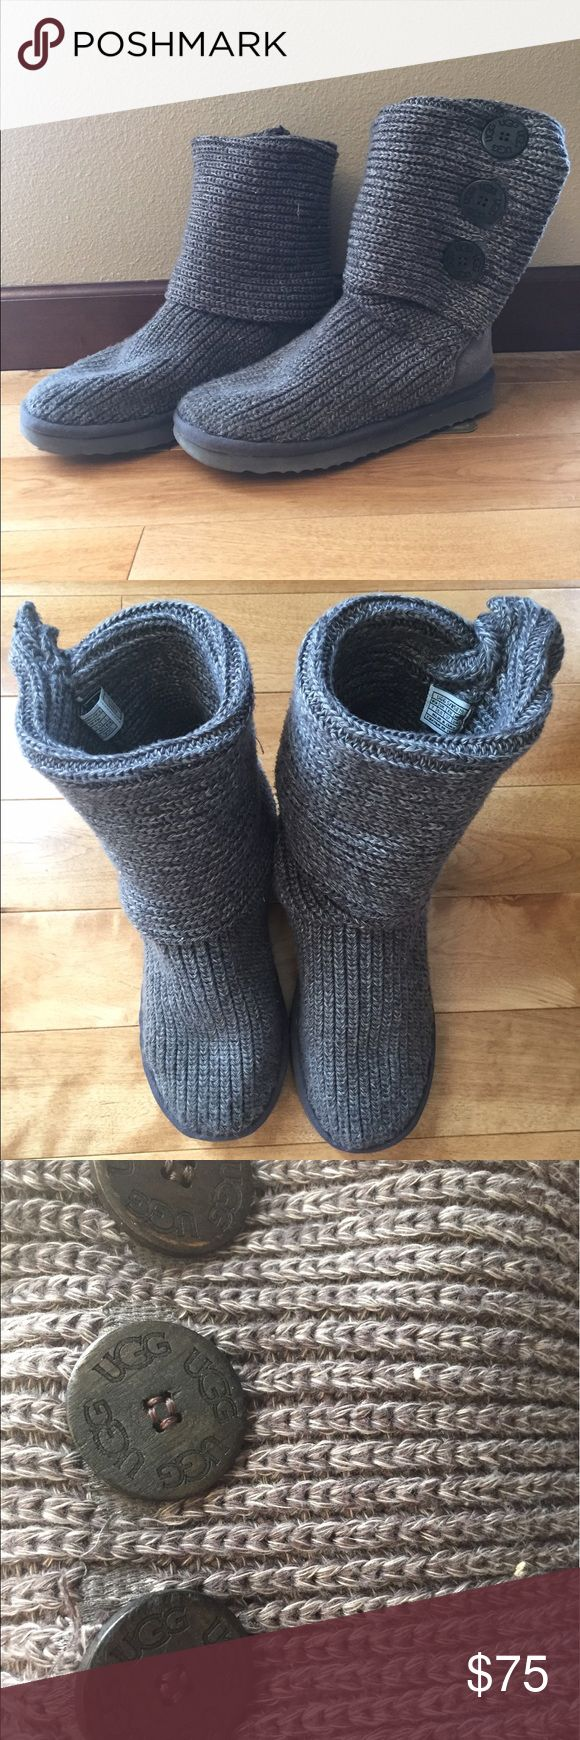 UGG classic cardy grey boots GUC due to some wear on the soles, otherwise they look like new! UGG Shoes Winter & Rain Boots